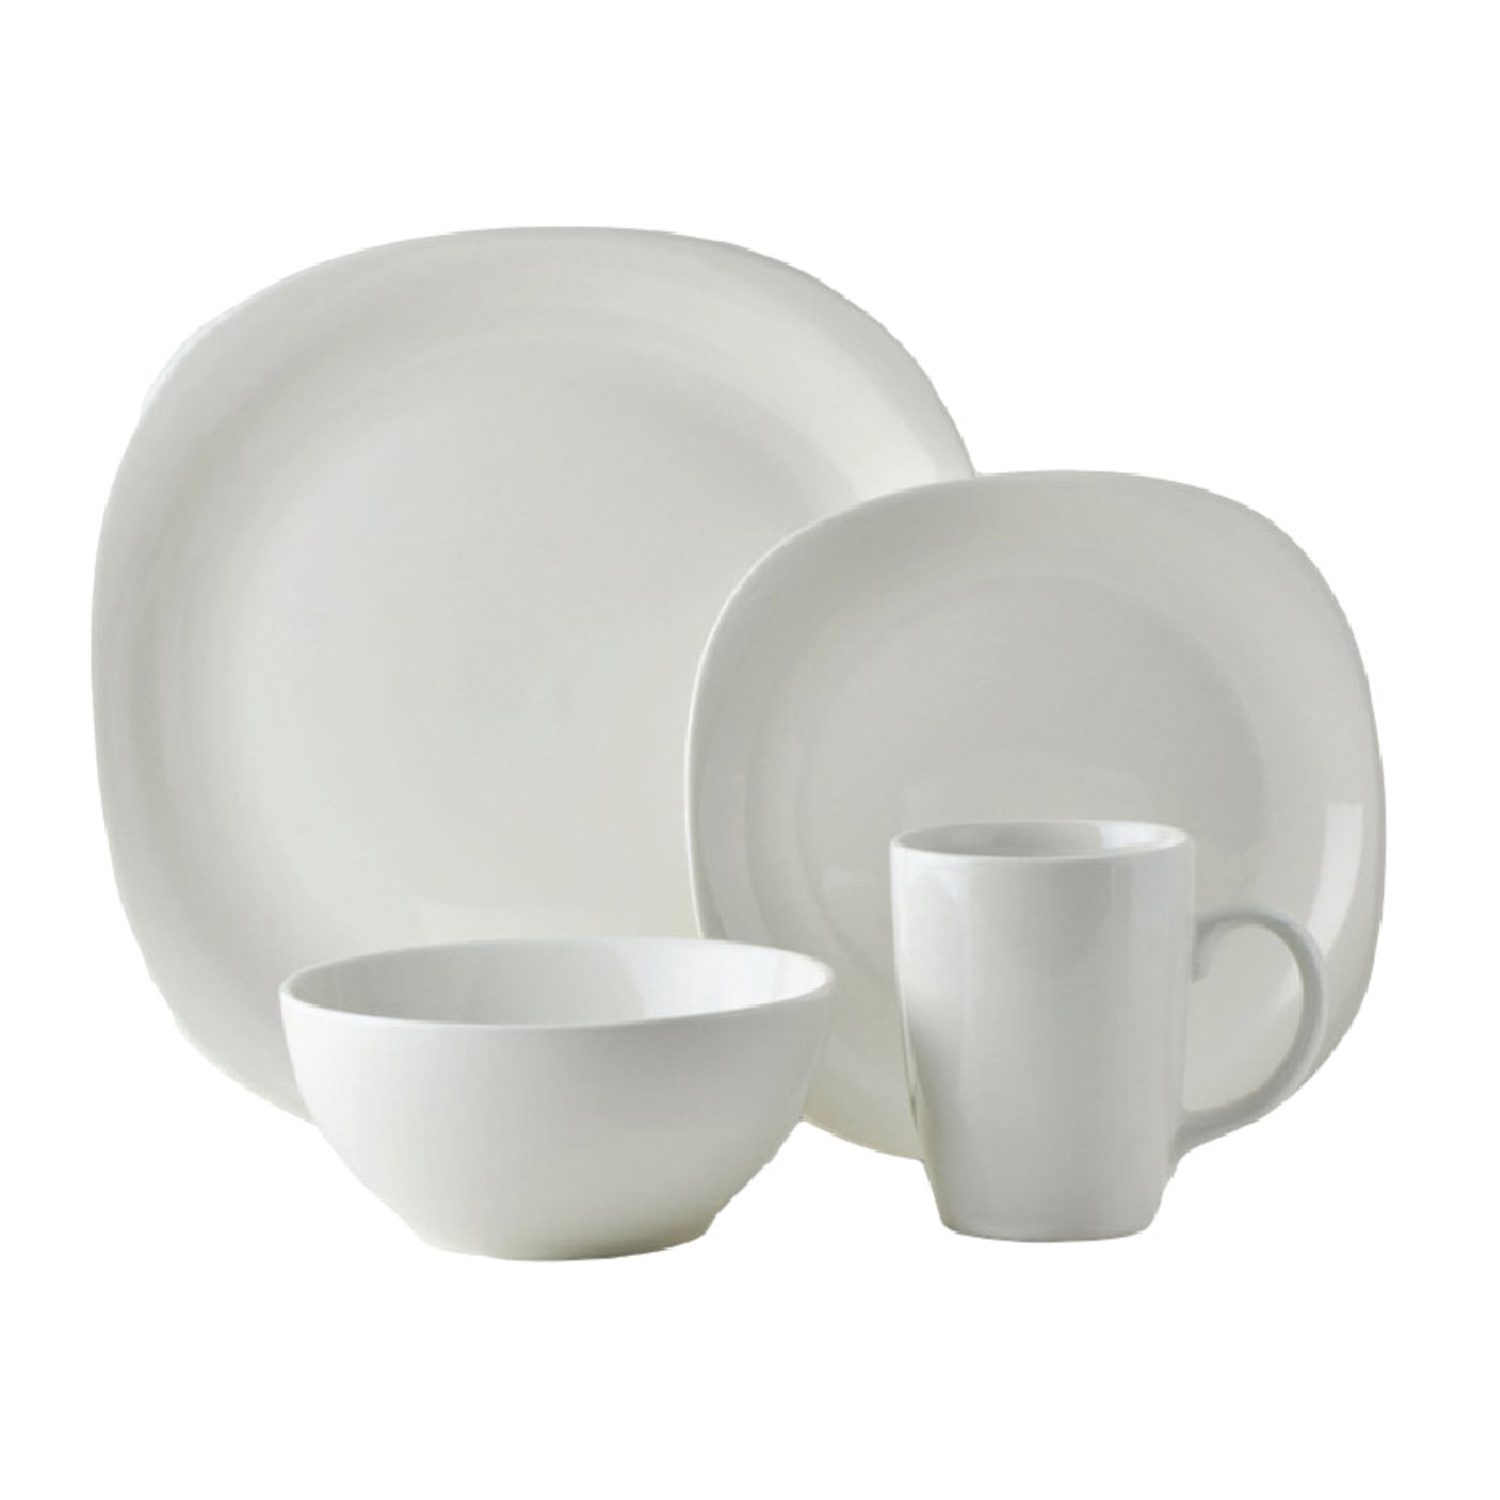 Quadro White Square Dinner Set 16Pc. Click to zoom  sc 1 st  Homestore and More & Quadro White Square Dinner Set 16Pc - Home Store + More